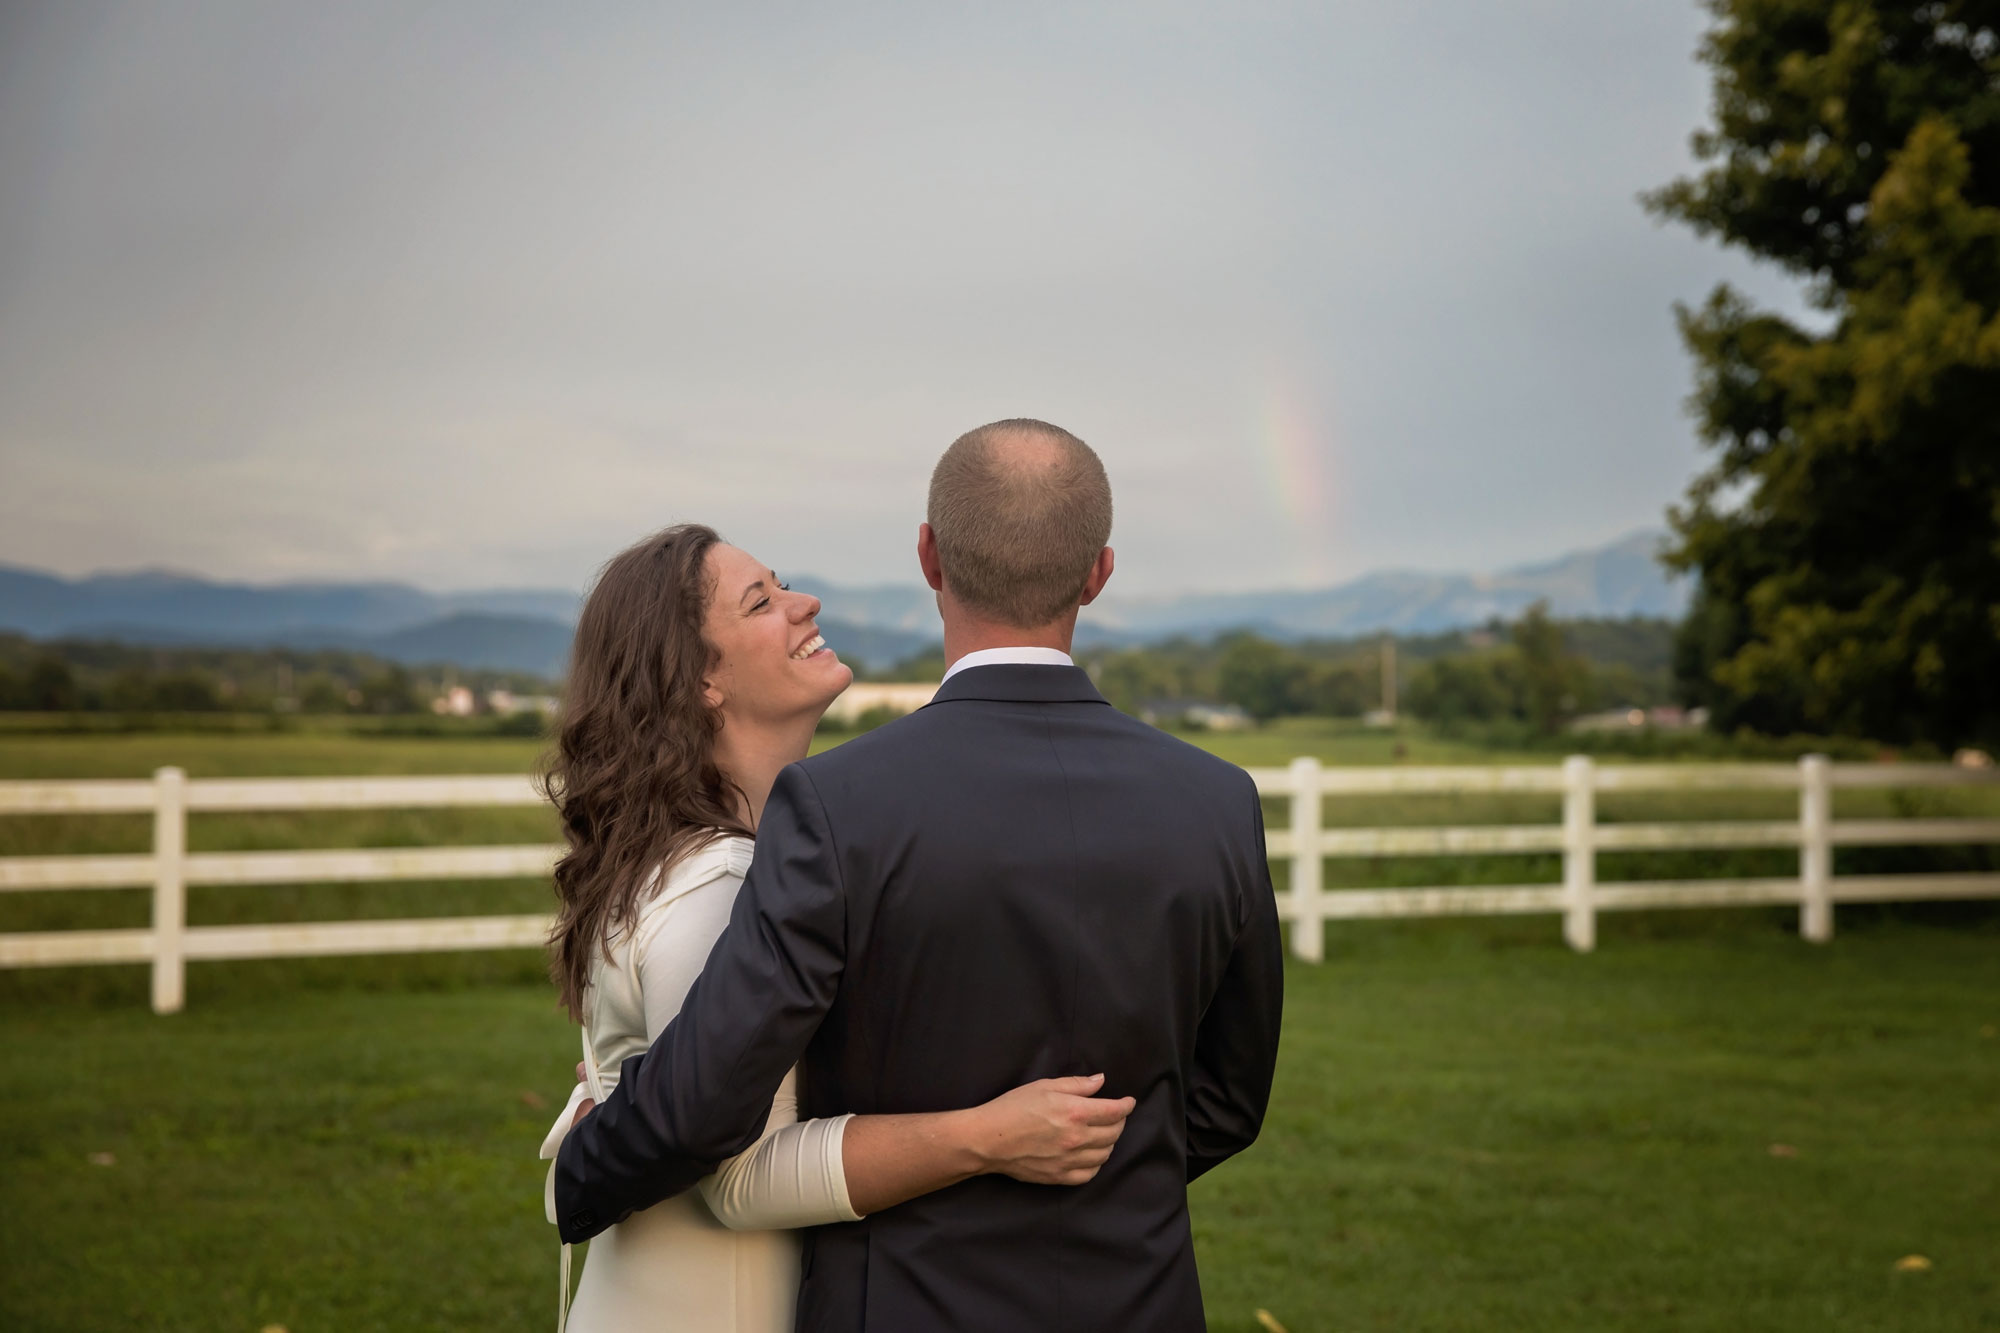 gatlinburg-tn-wedding-rainbow-over-couple.jpg